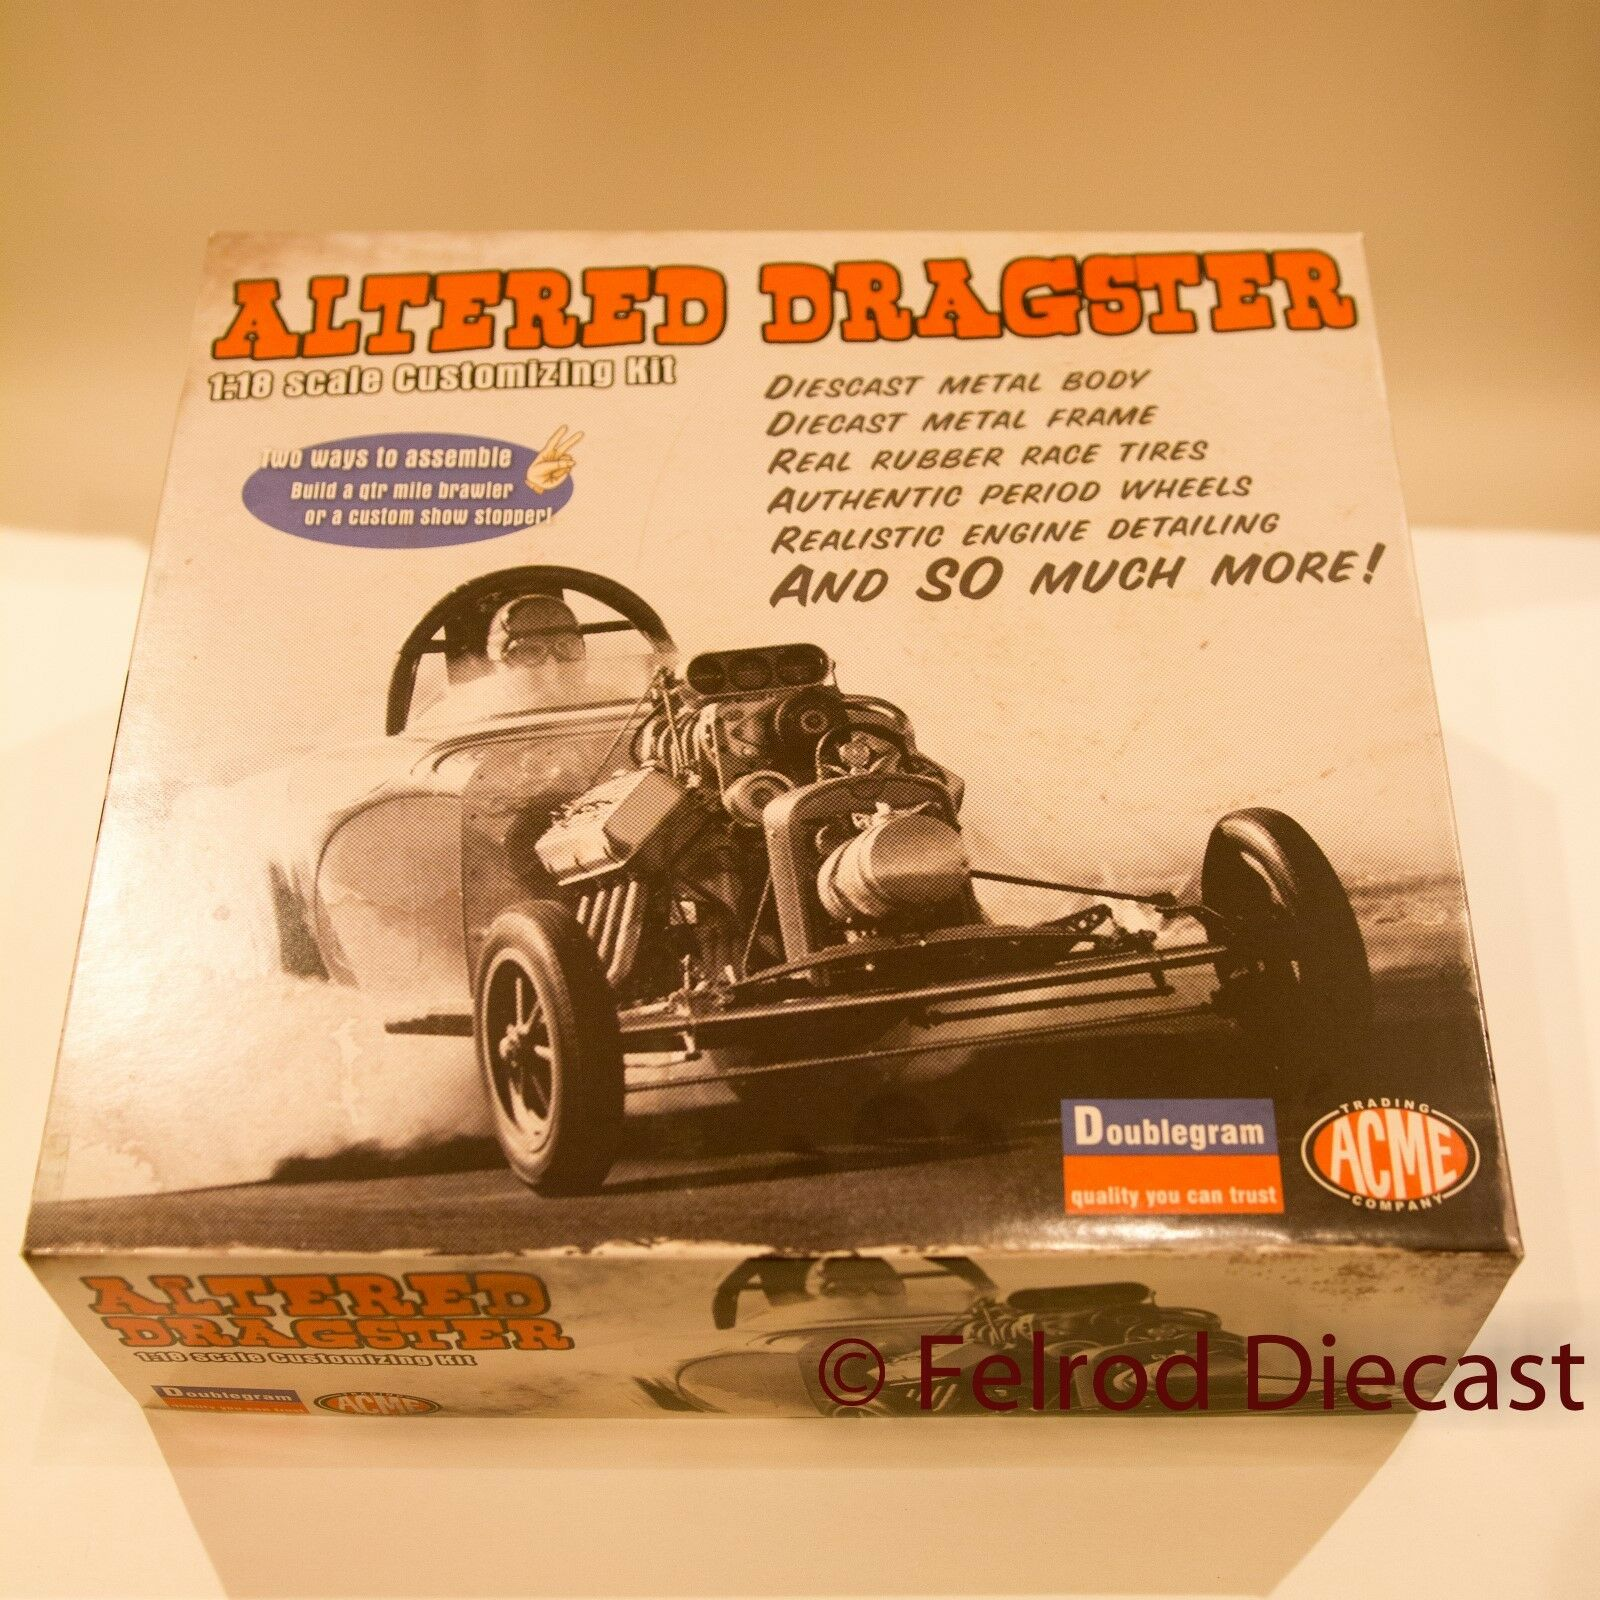 1 18 ACME Alterouge Dragster Diecast & Plastic Model Kit A1800807K